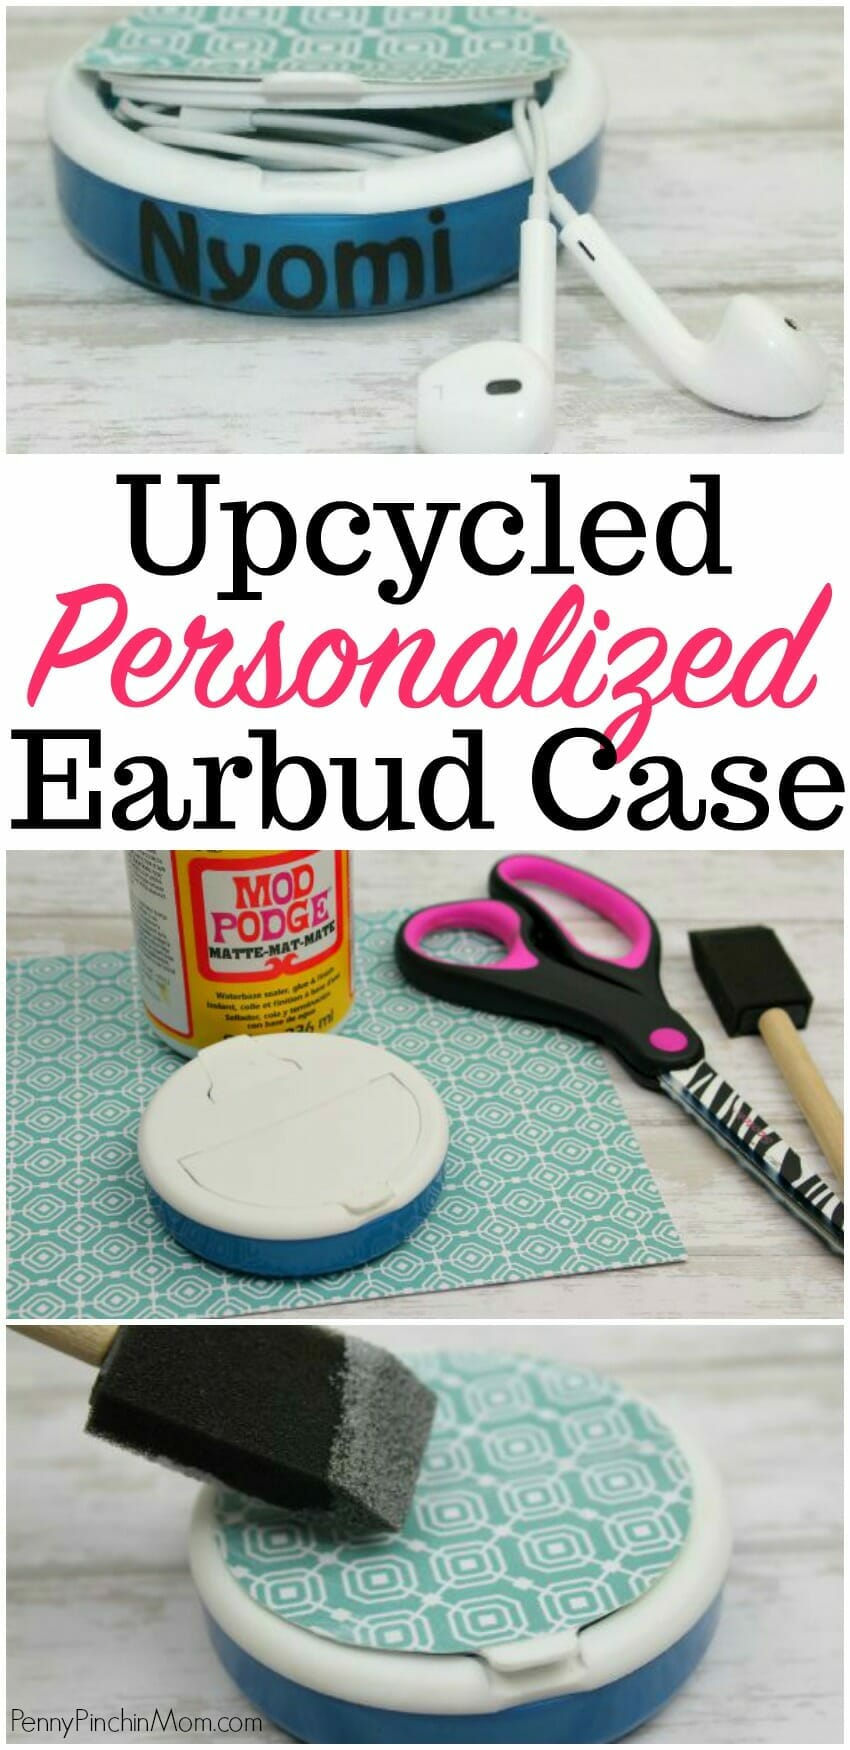 Upcycled Earbud Case!  Easy to make so your earbuds don't get tangled up.